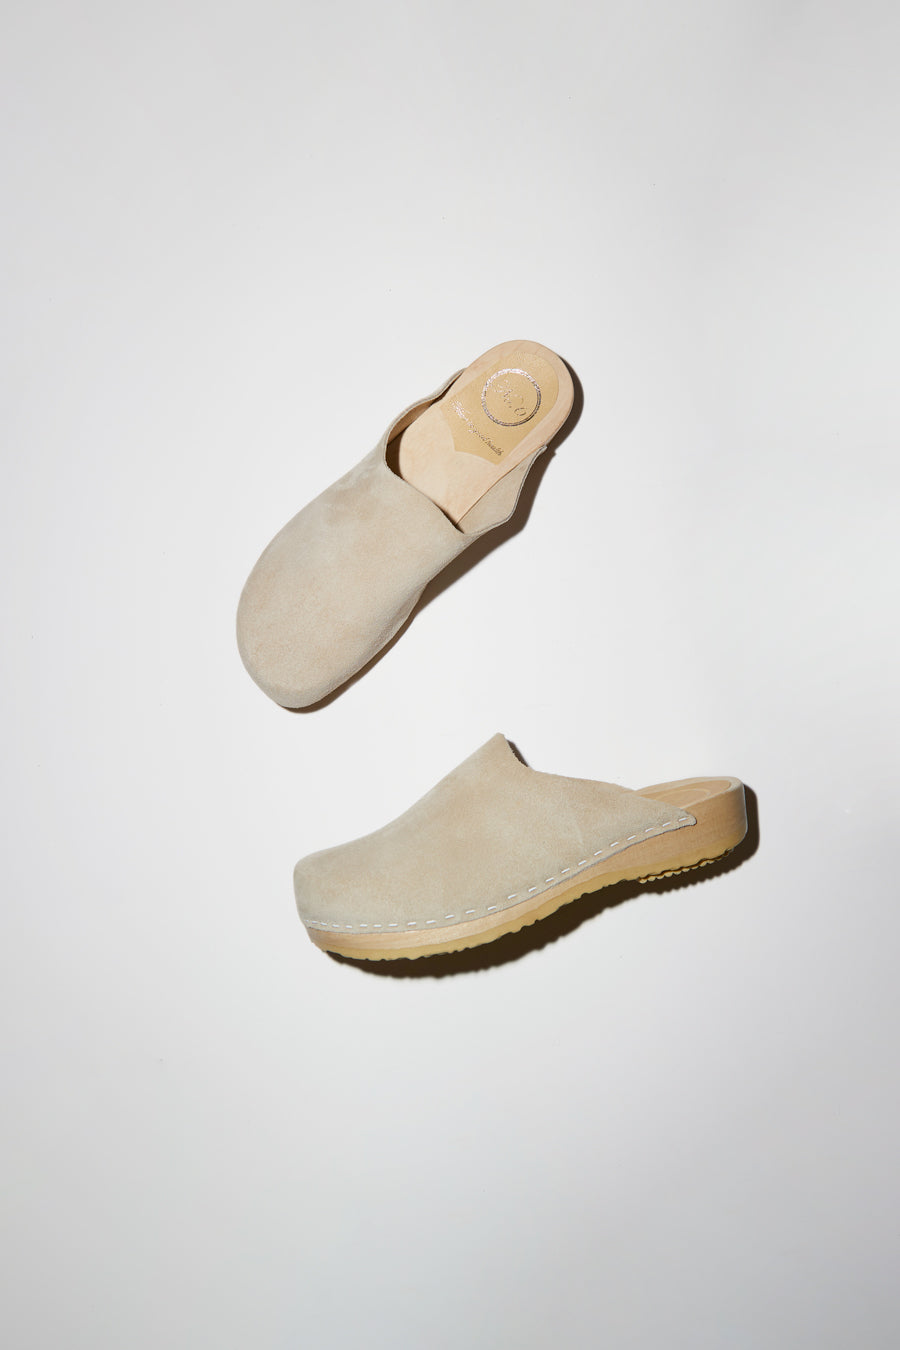 No.6 Contour Clog on Flat Base in Chalk Suede